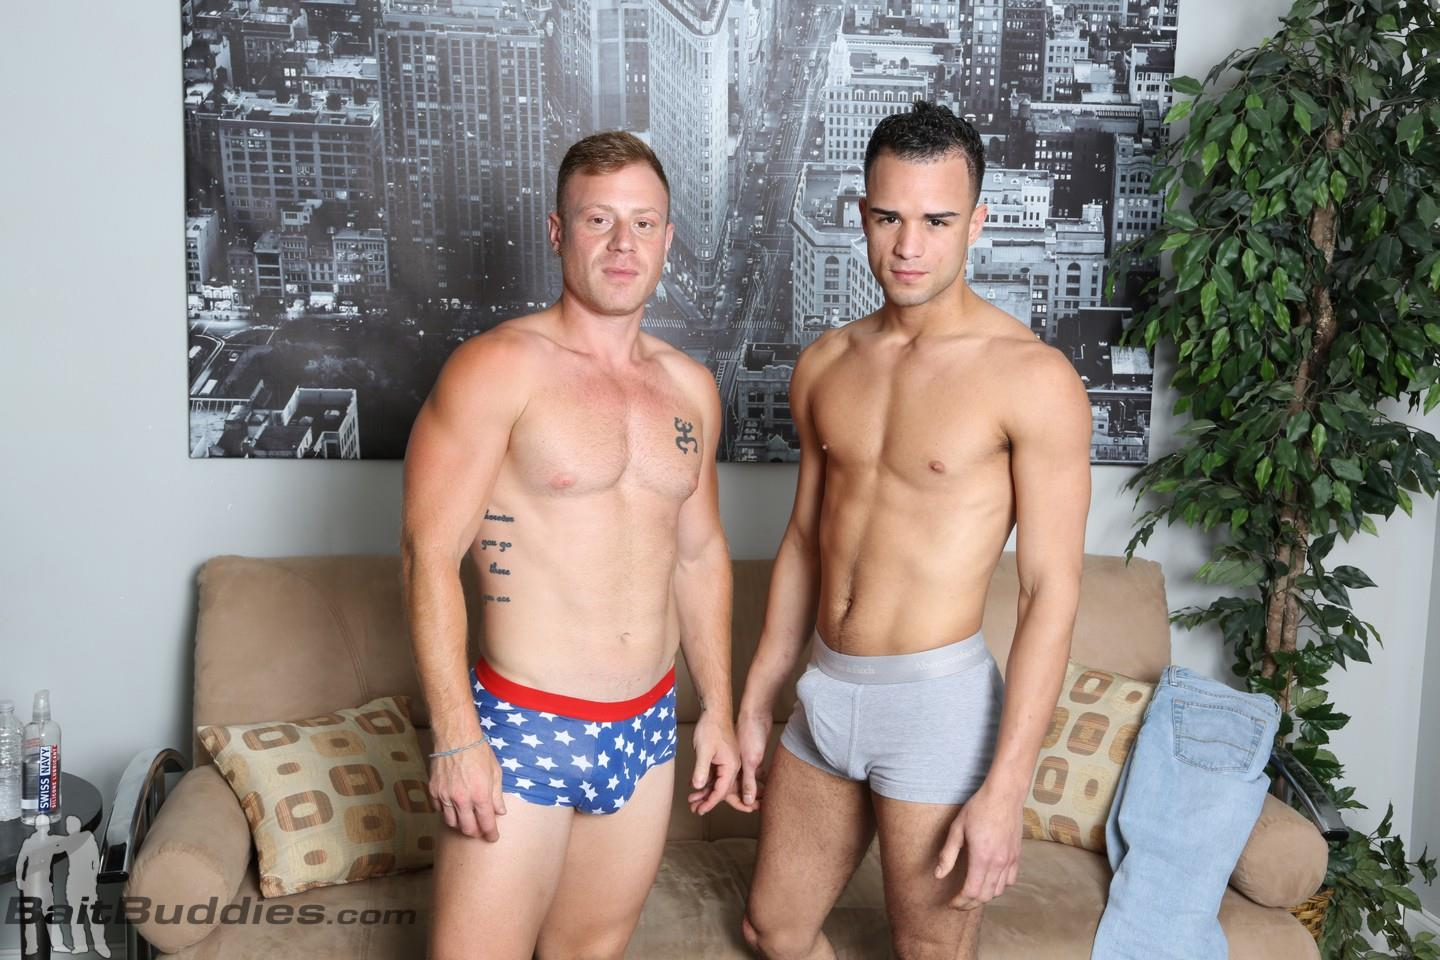 Bait Buddies Saxon and Javier Cruz Straight Ginger With Thick Cock Amateur Gay Porn 03